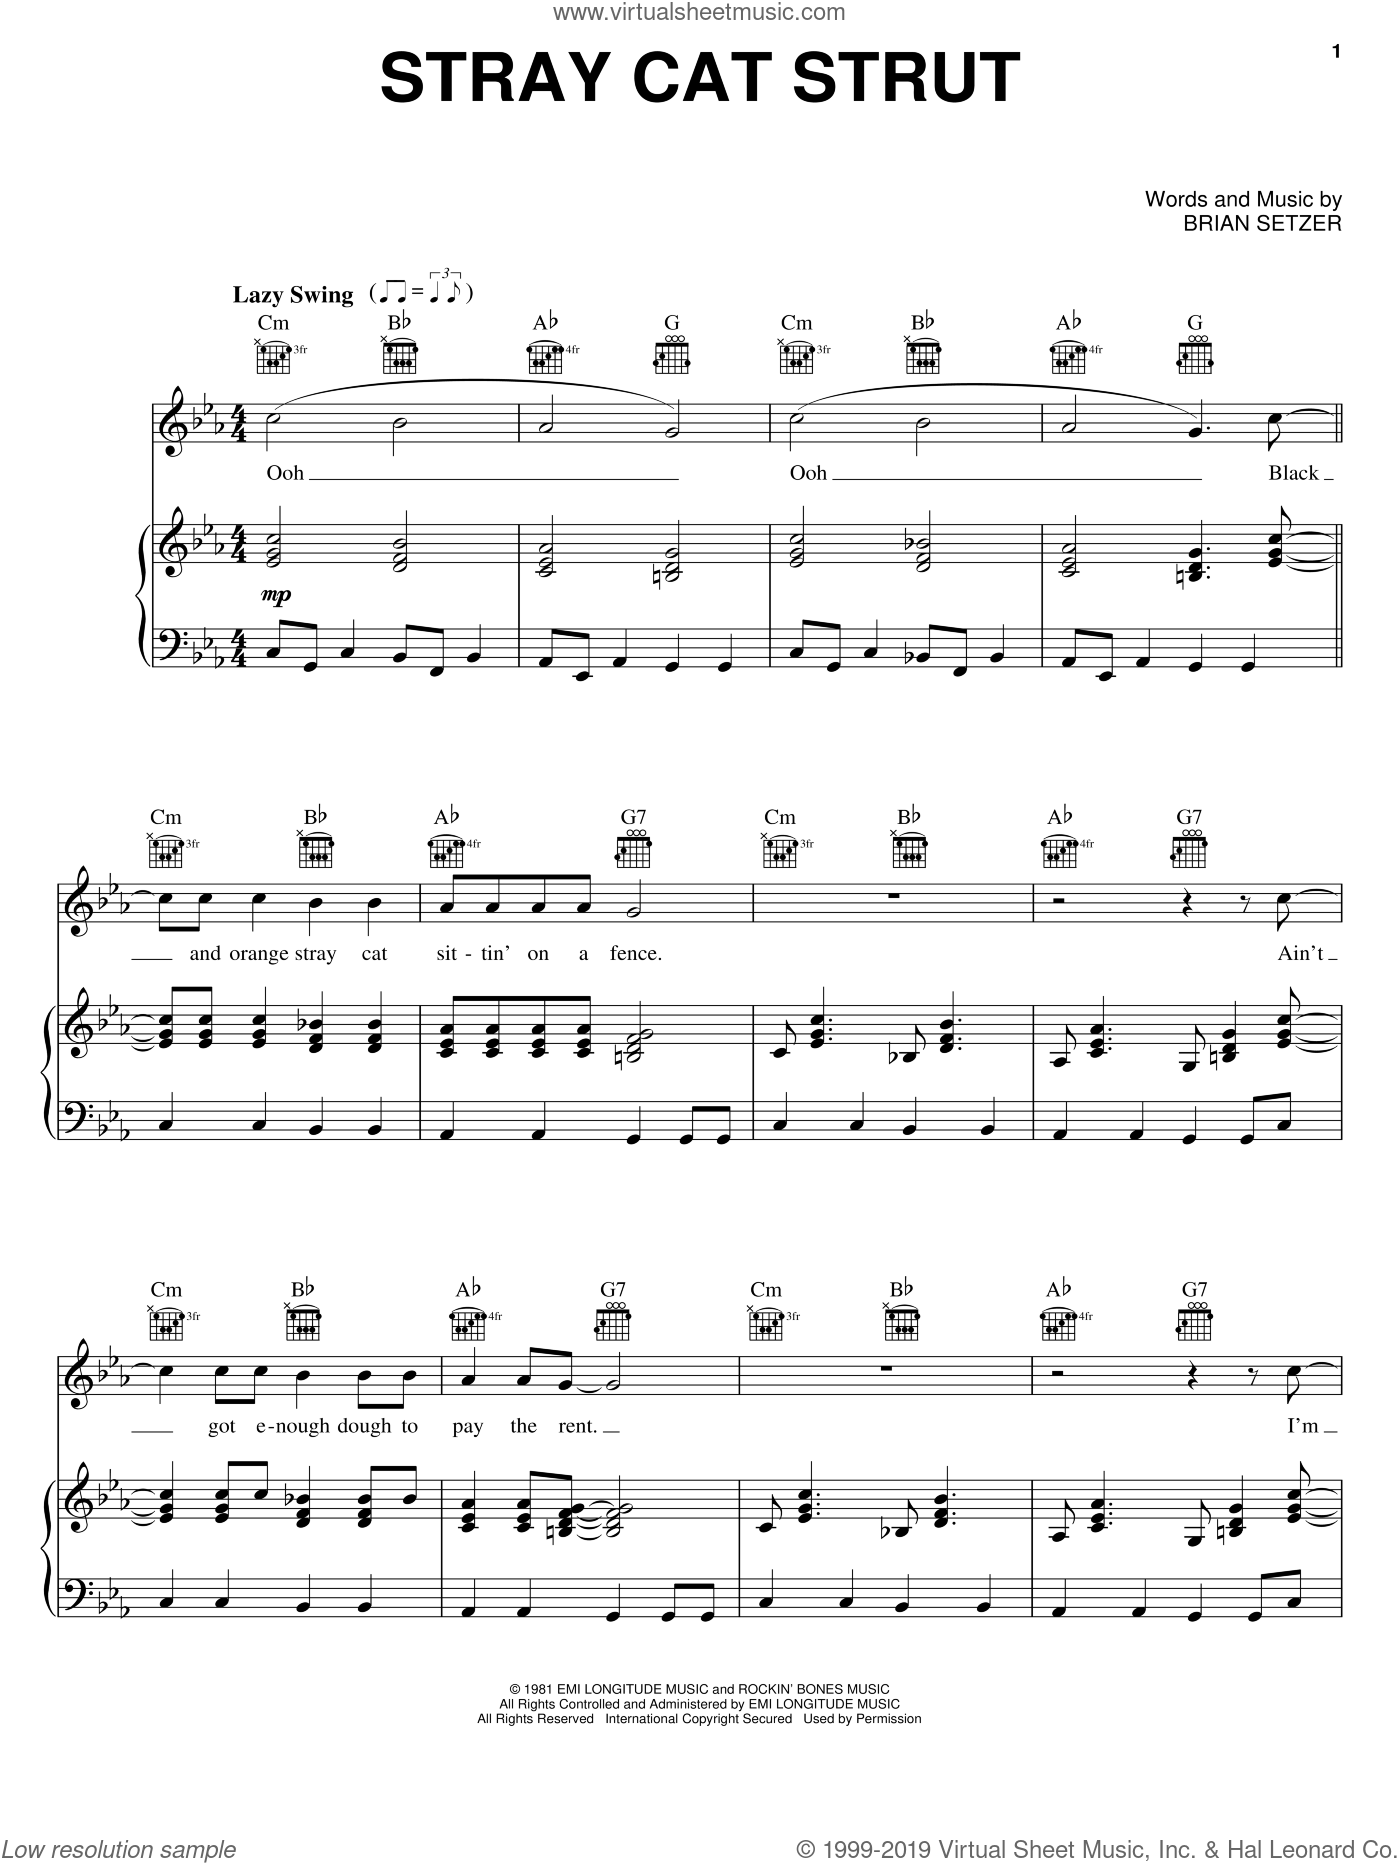 Stray Cat Strut sheet music for voice, piano or guitar by Stray Cats and Brian Setzer. Score Image Preview.